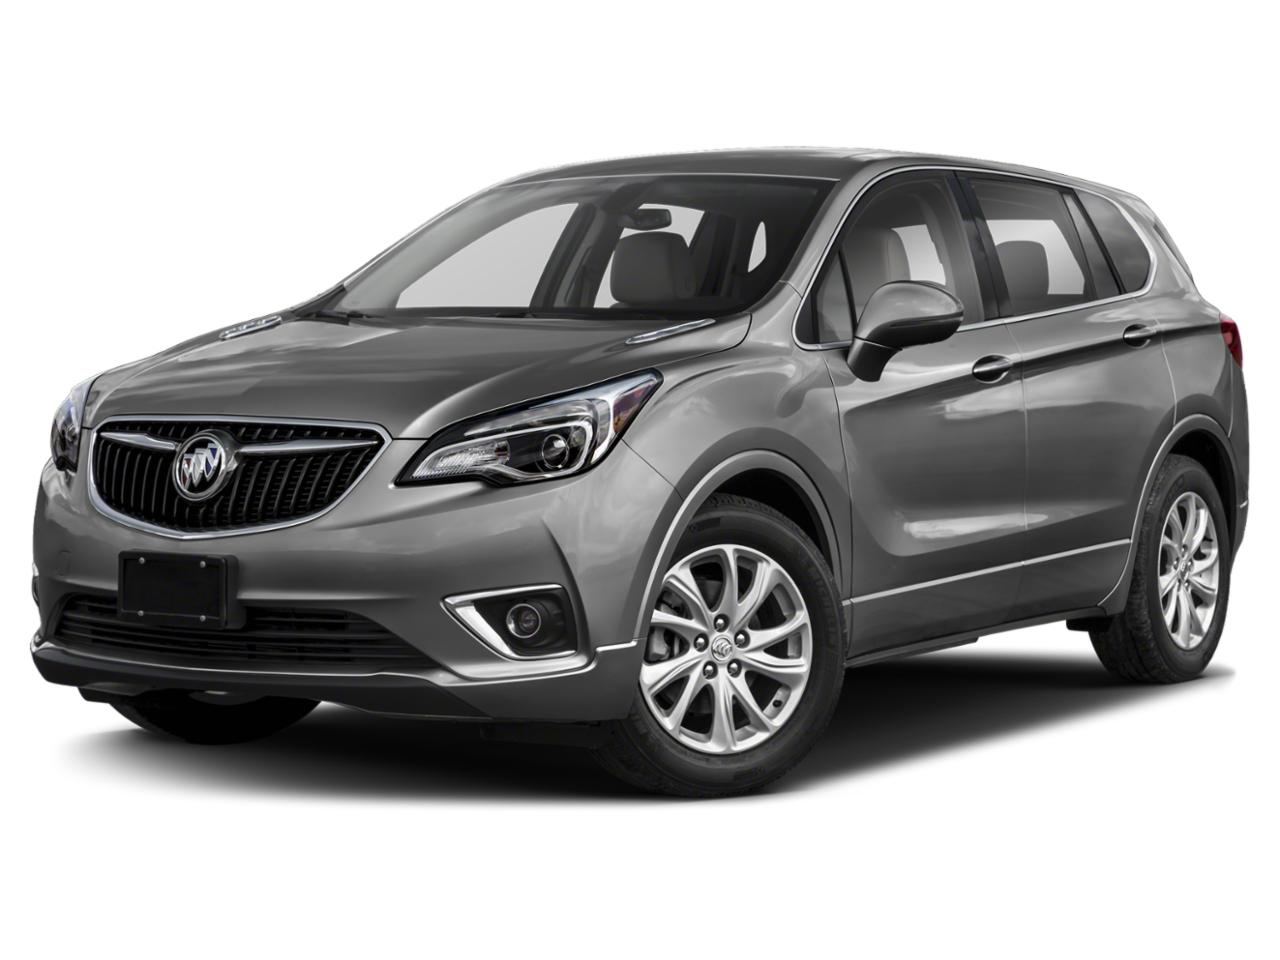 New 2020 Buick Envision Fwd 4Dr Preferred Vin 2022 Buick Envision Release Date, Preferred, Exterior Colors